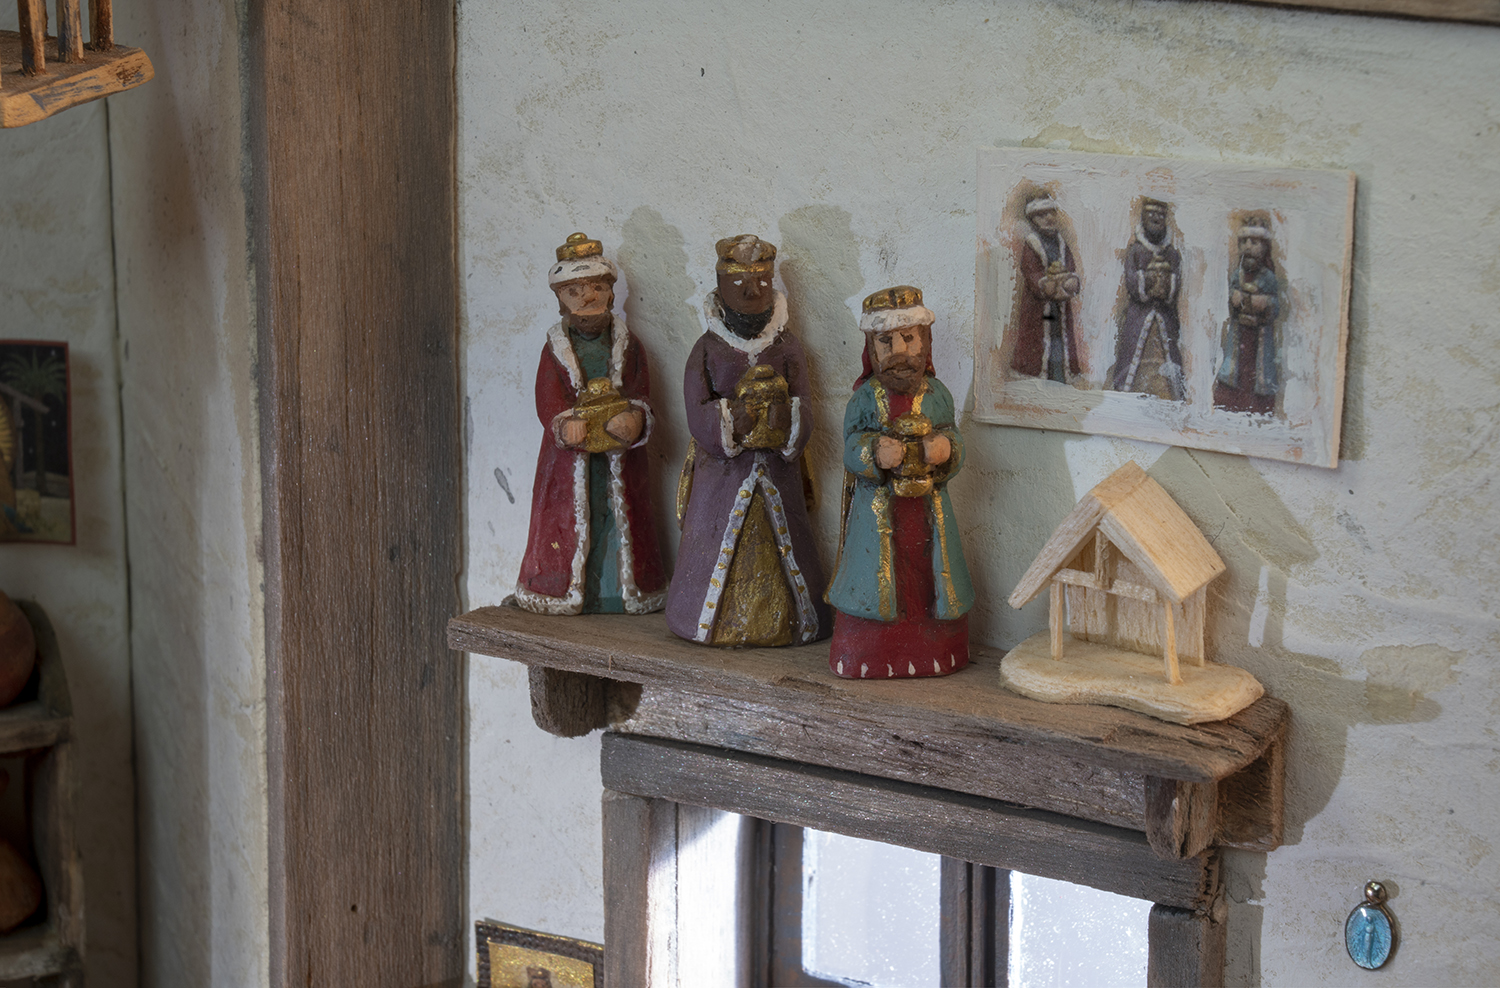 Figure 15: The wise men, an incomplete stable, and a blue pendant of the Virgin Mary. The pendant once belonged to R. Michael Palan's mother, and was added to her rosary beads.